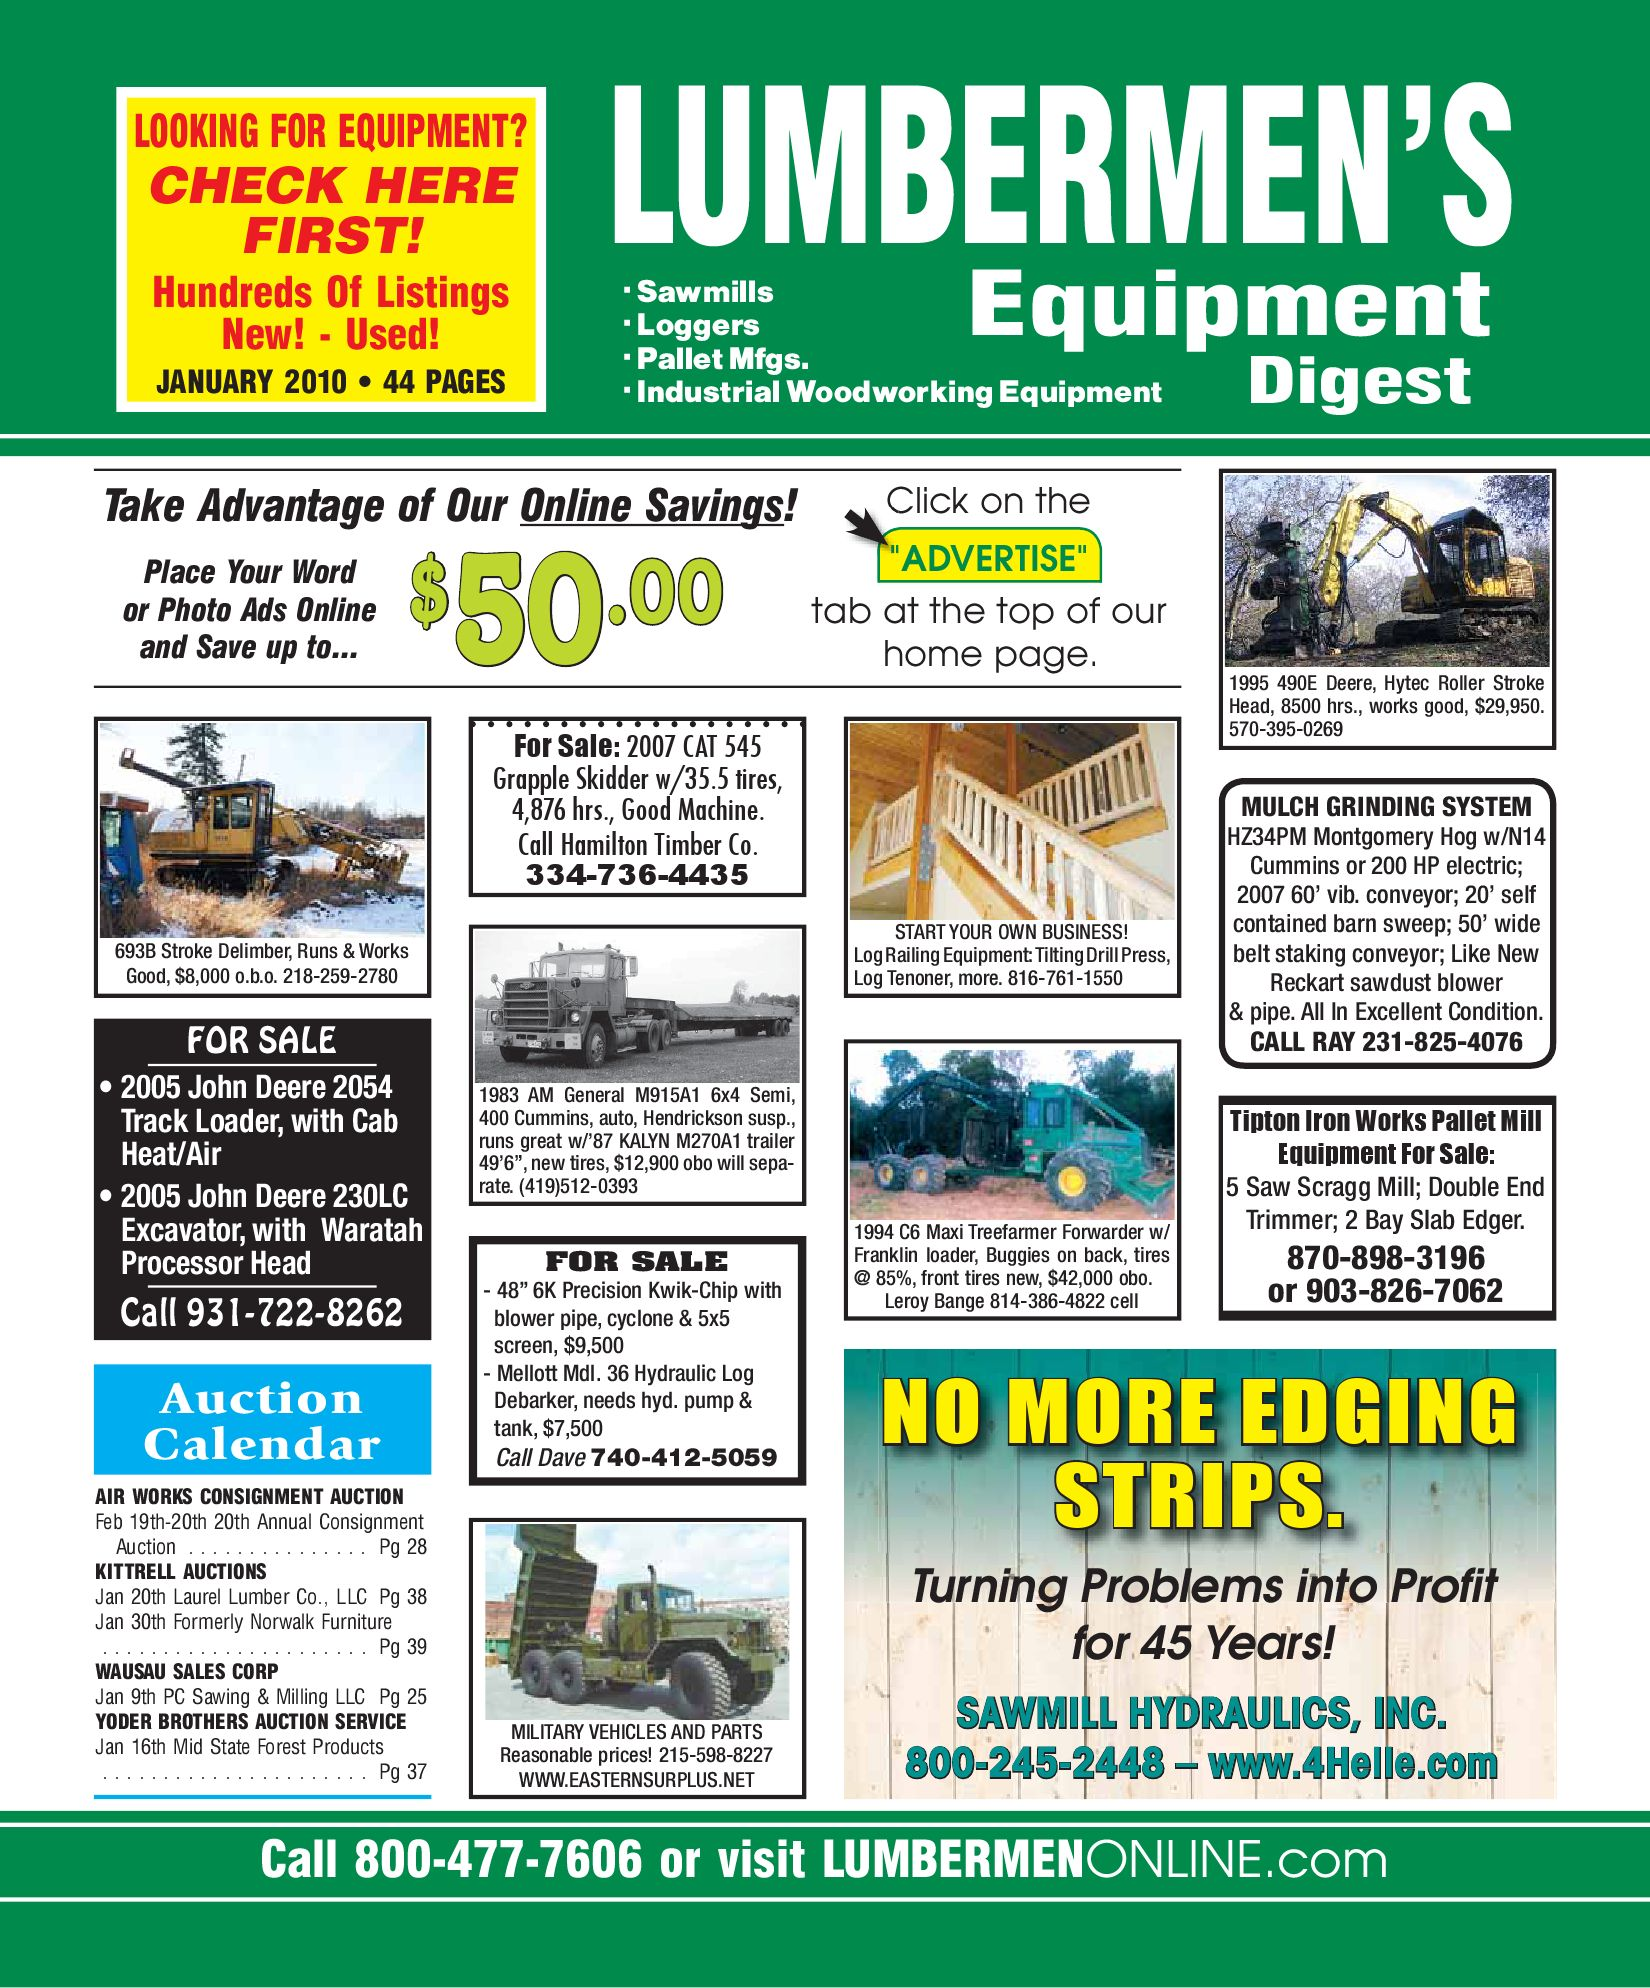 Tree farmer skidder for sale in ny - January 2010 Lumbermen S Equipment Digest By Lumbermen S Equipment Digest Issuu